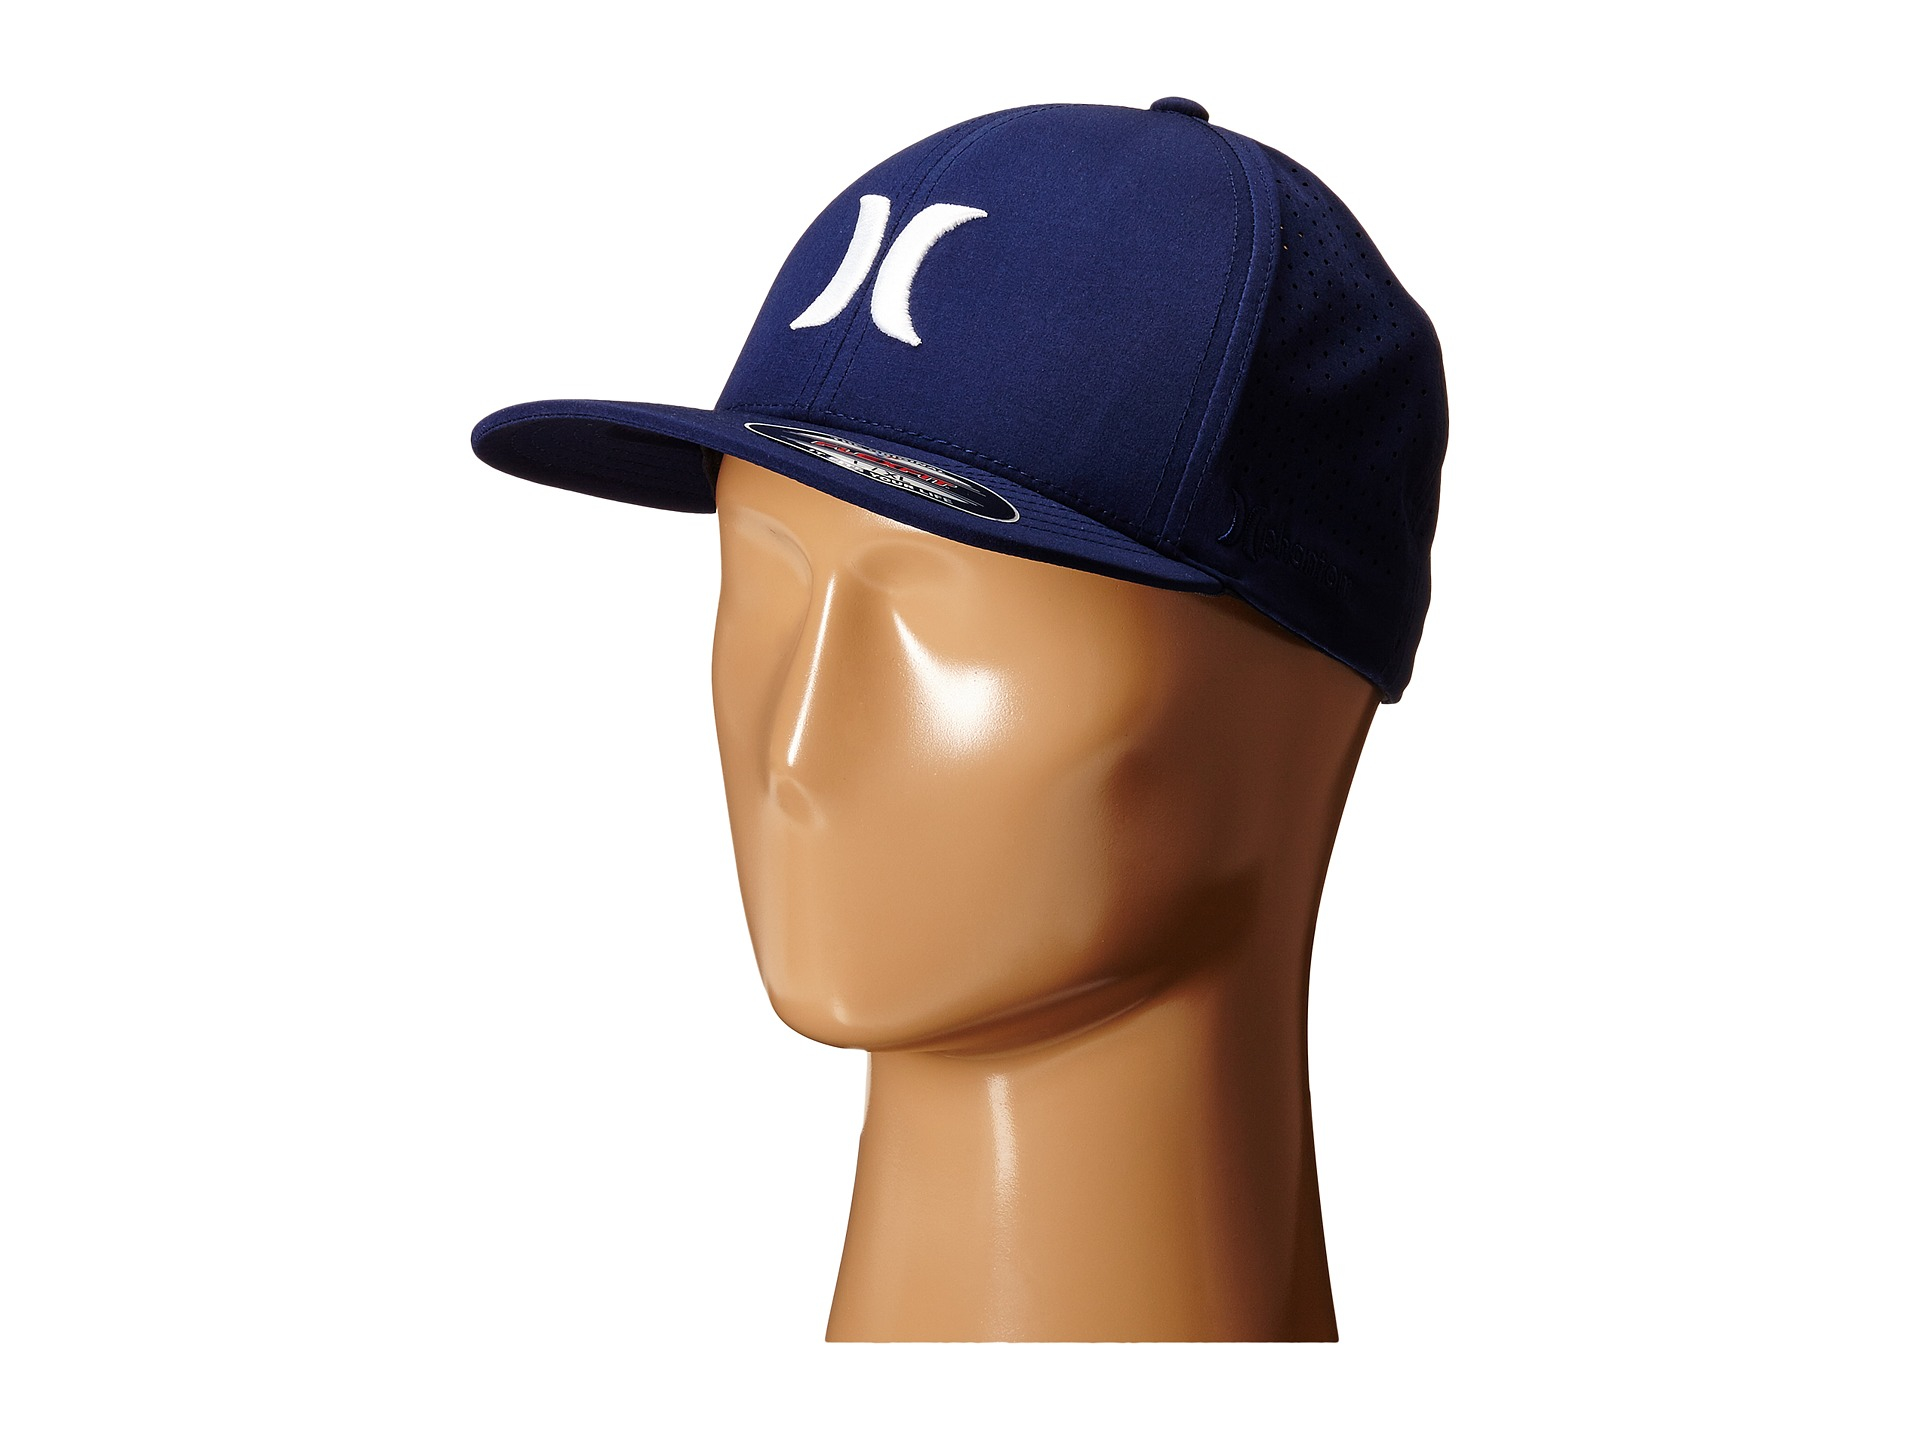 894ce7c34 coupon for navy blue hurley hat 87405 ce5b2